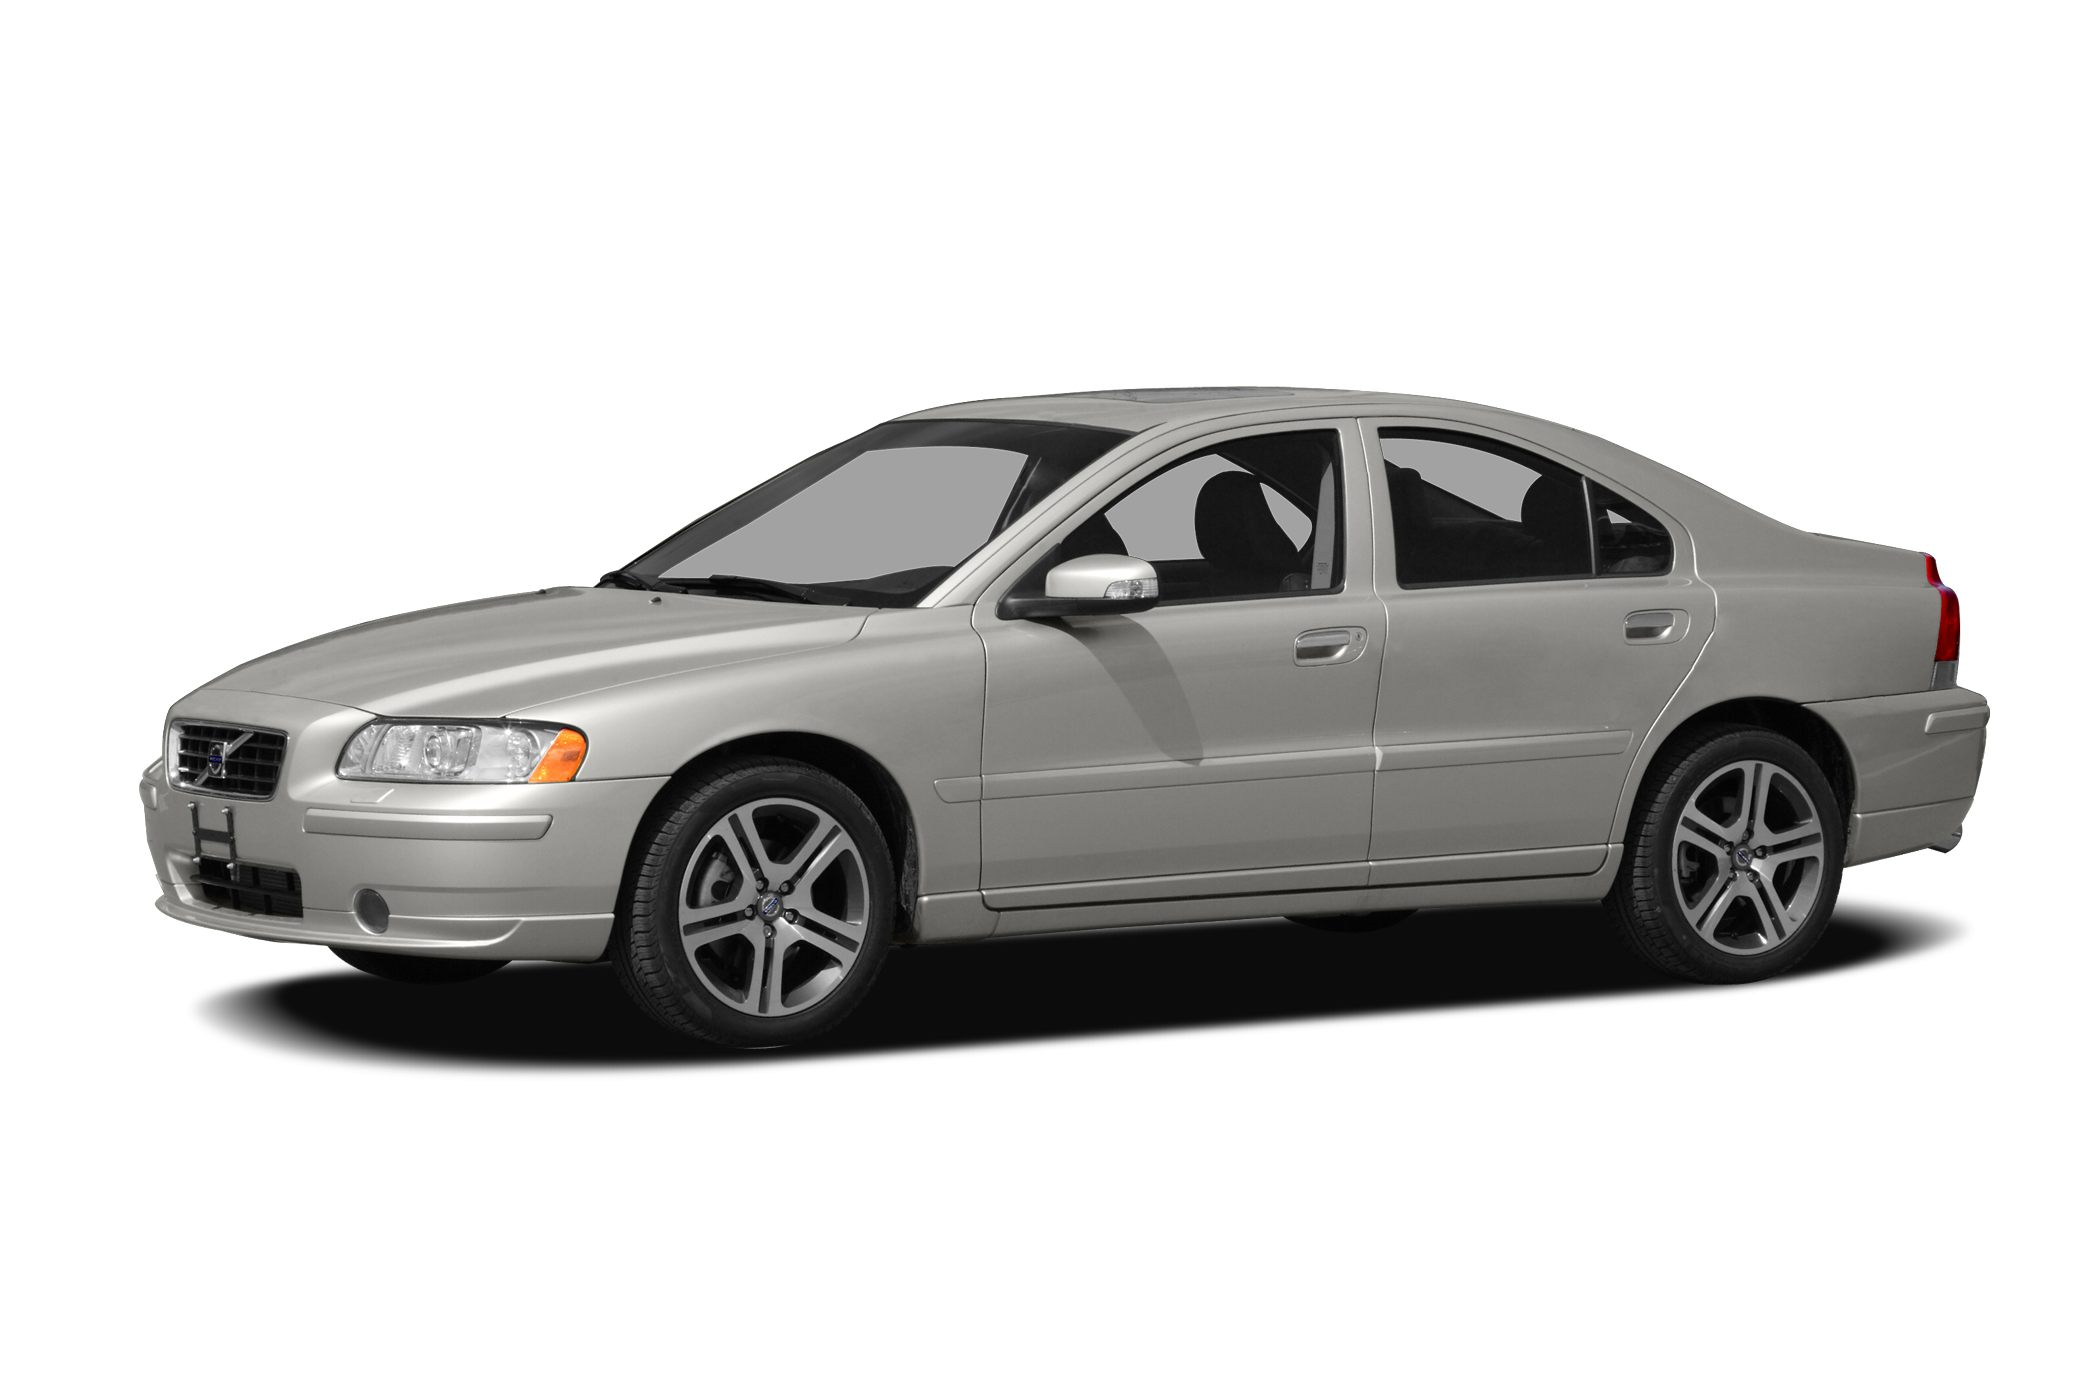 2007 Volvo S60 2.5T Sedan for sale in Melbourne for $10,995 with 95,074 miles.